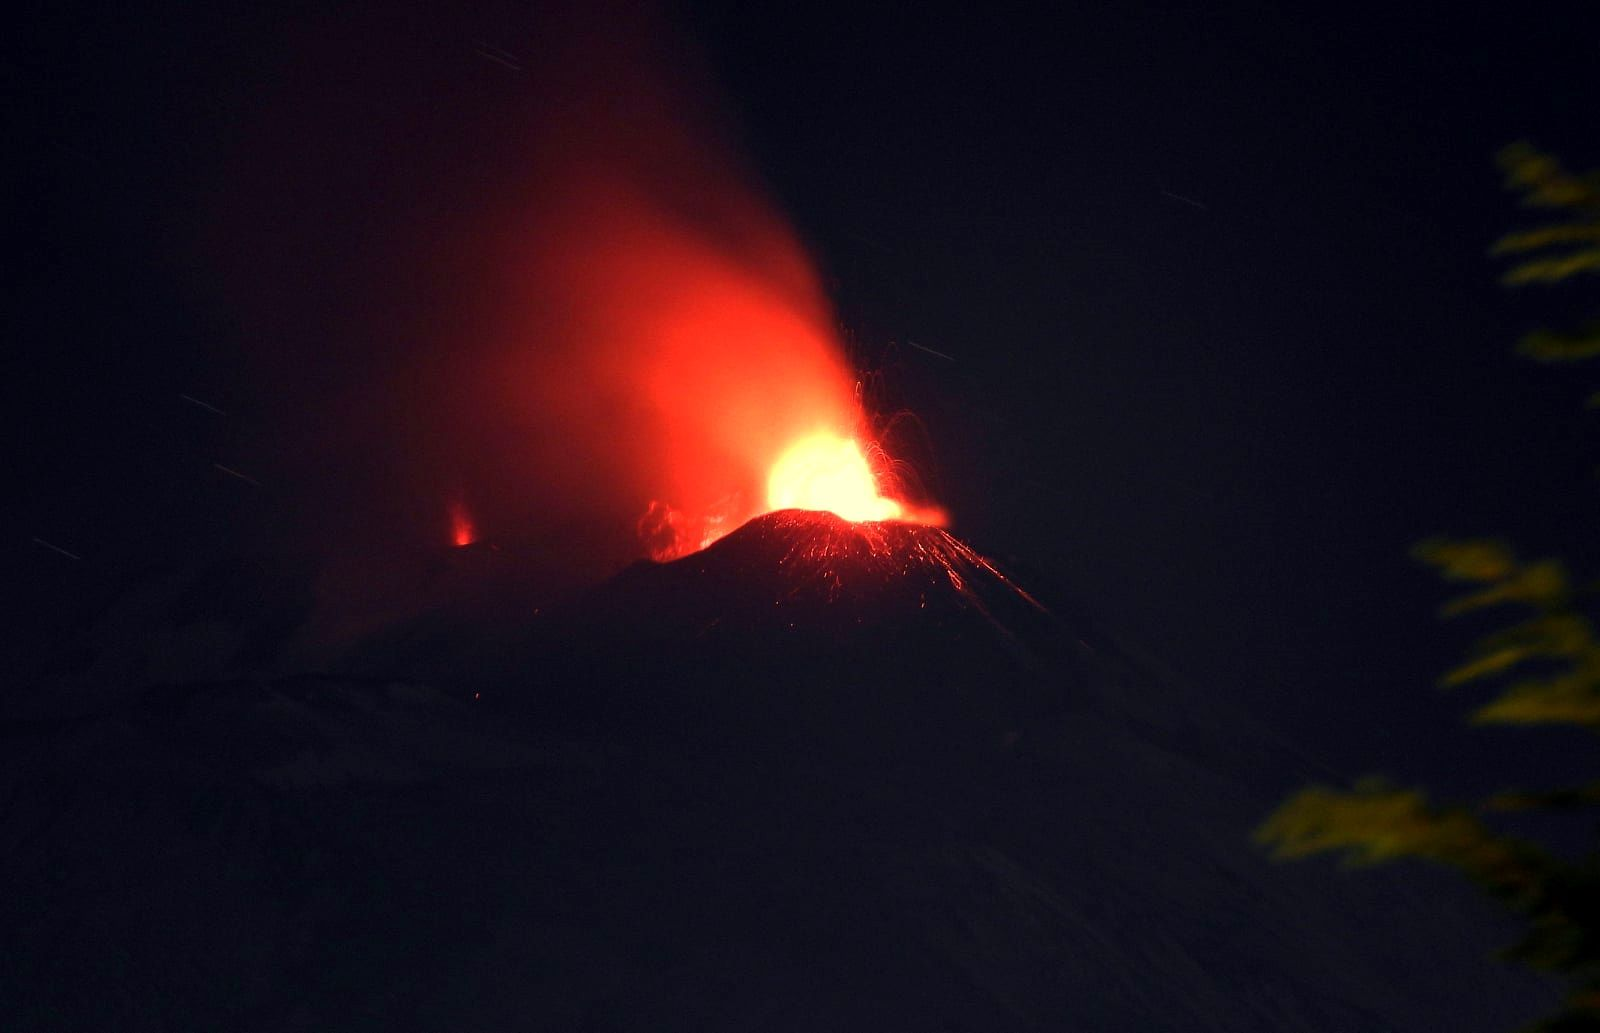 Etna -14.12.2020 in the evening - activity at the SE crater (foreground) and sporadic at La Voragine (background left) - photo boris Behncke